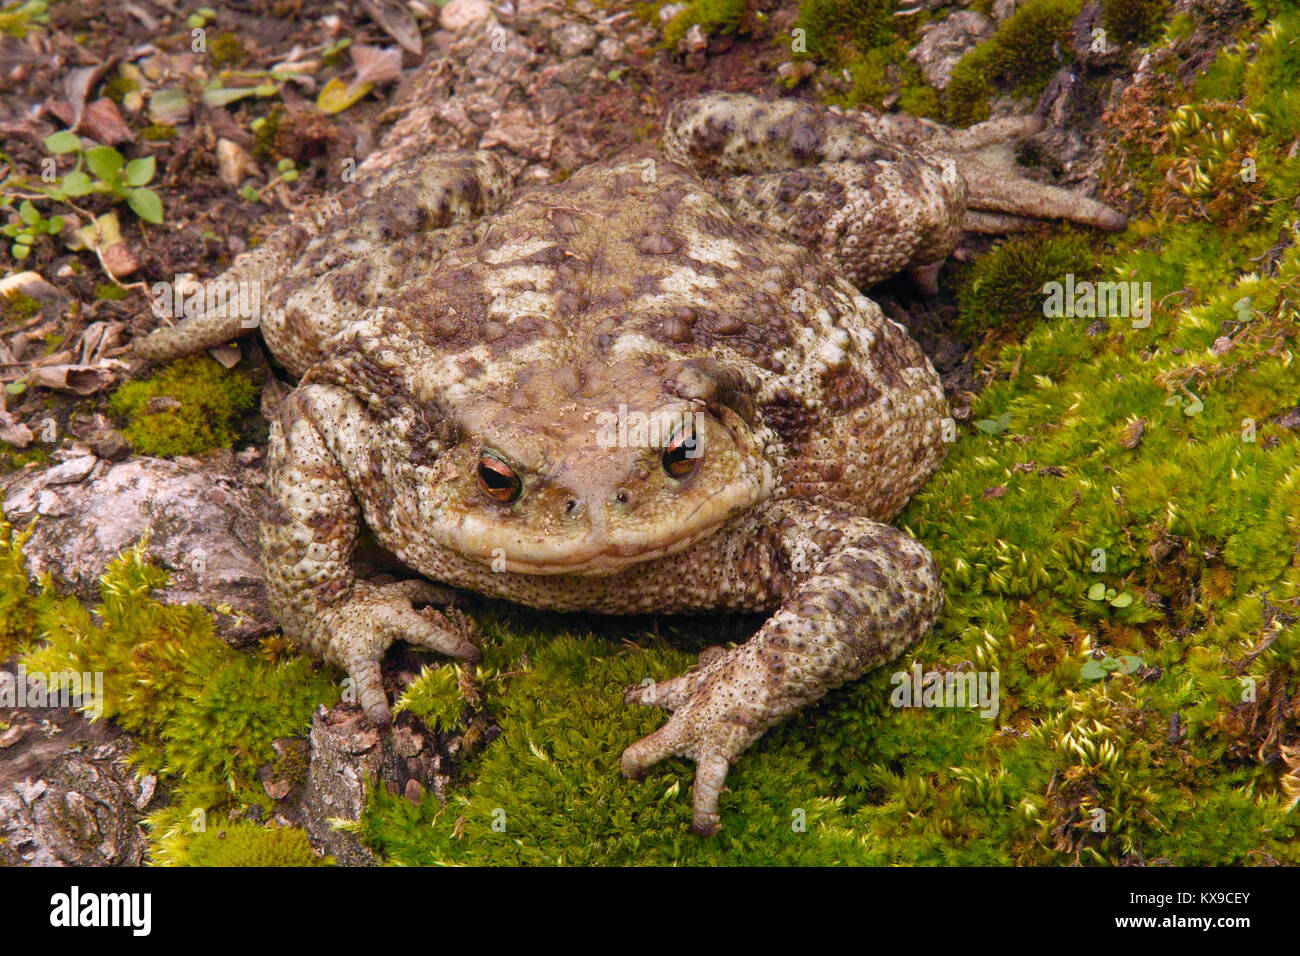 common toad seen from the front, bufo bufo, bufonidae - Stock Image